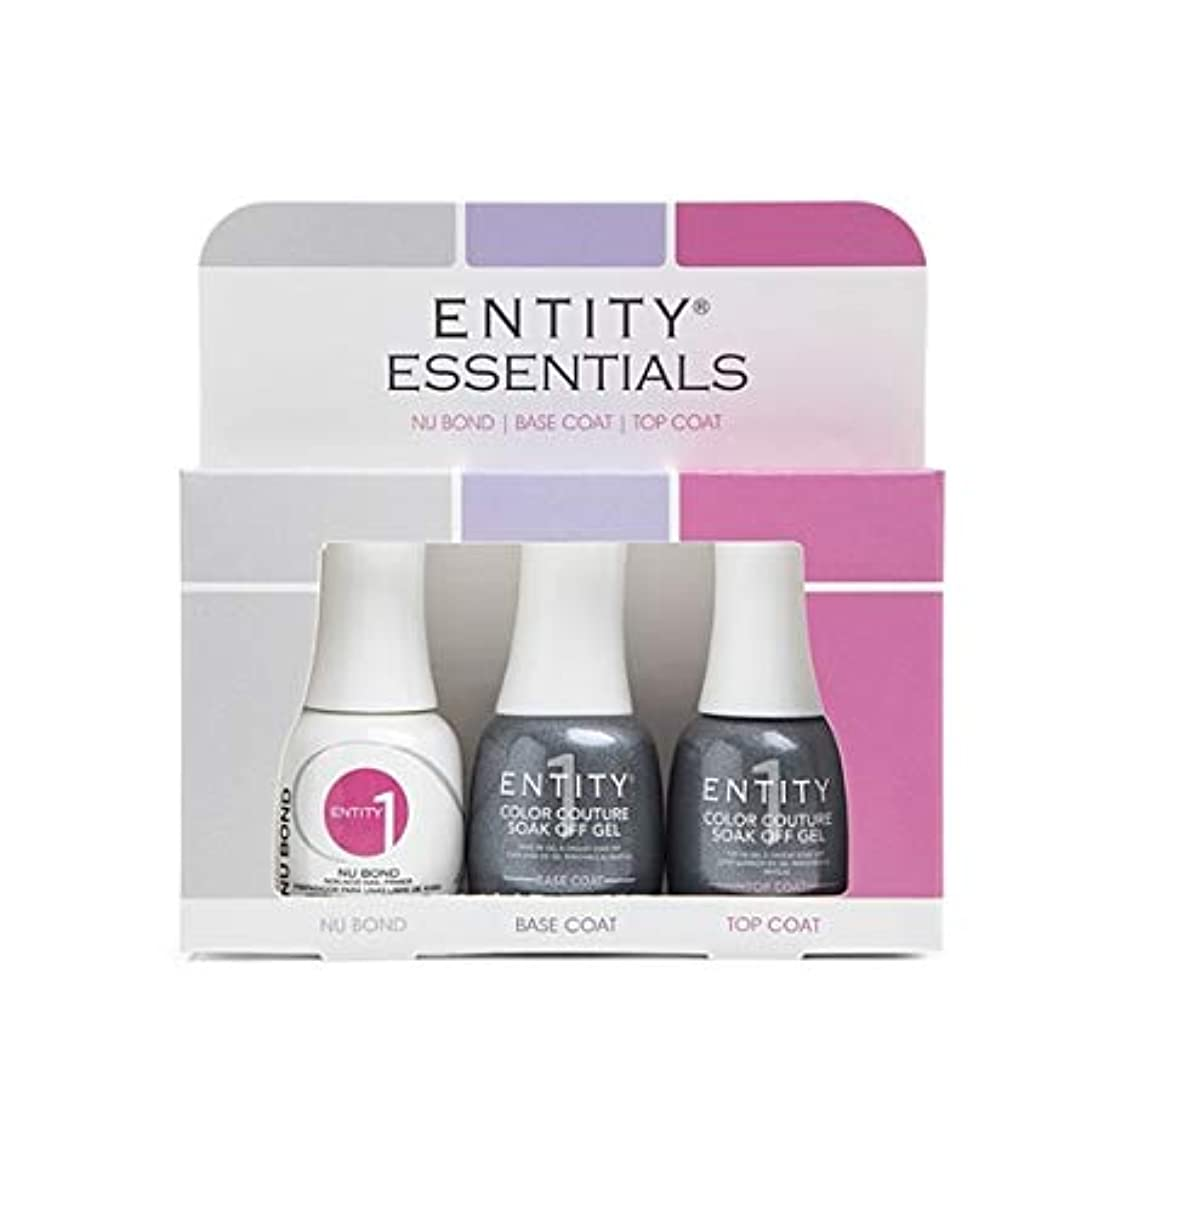 Entity One Color Couture Soak Off Gel - Essentials 3pc KIT